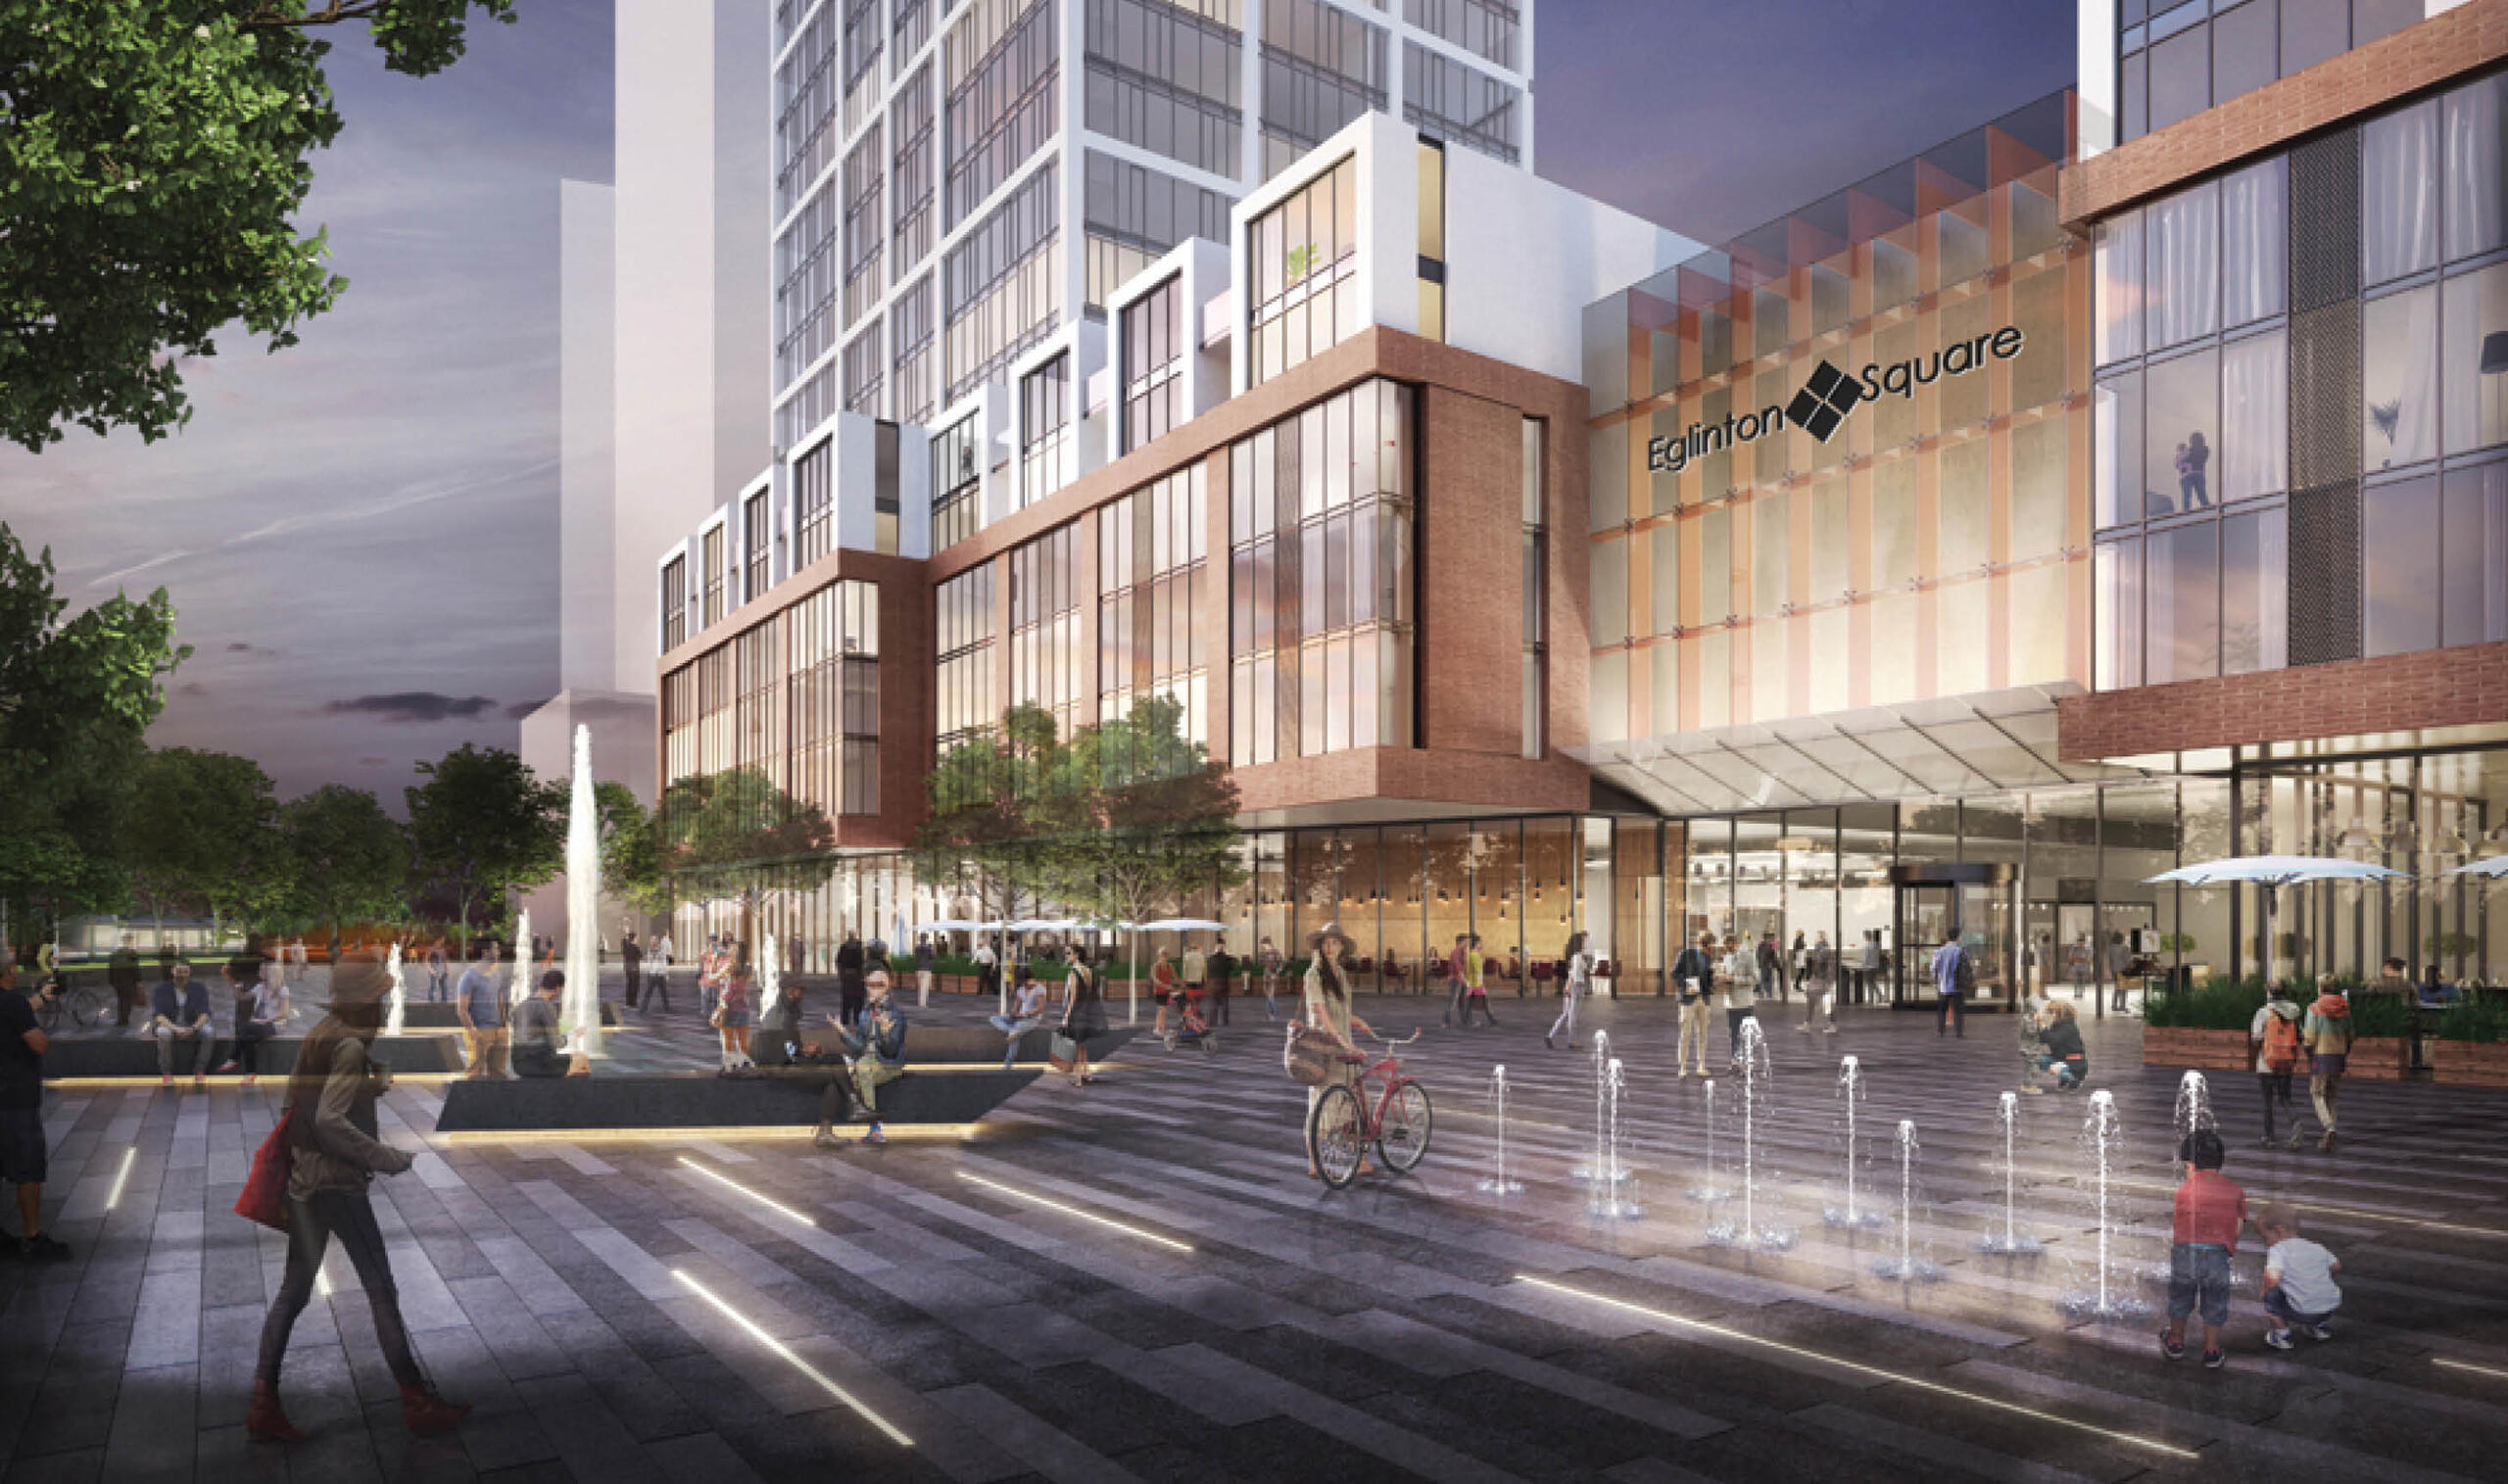 Rendering of proposed Eglinton Square mall with lots of seating in the foreground and a glass facade on the mall with condos in the floors above